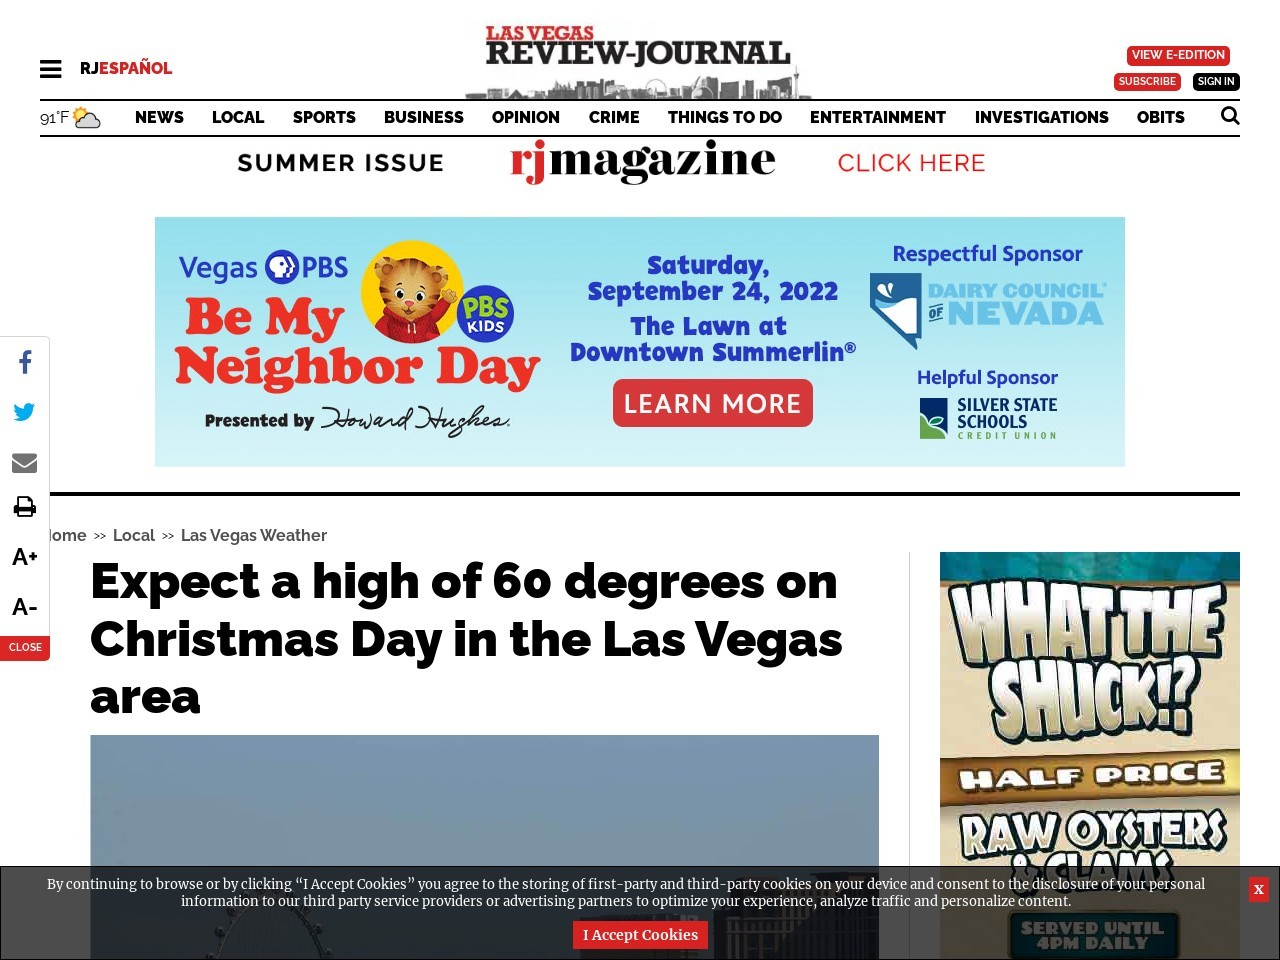 Expect a high of 60 degrees on Christmas Day in the Las Vegas area